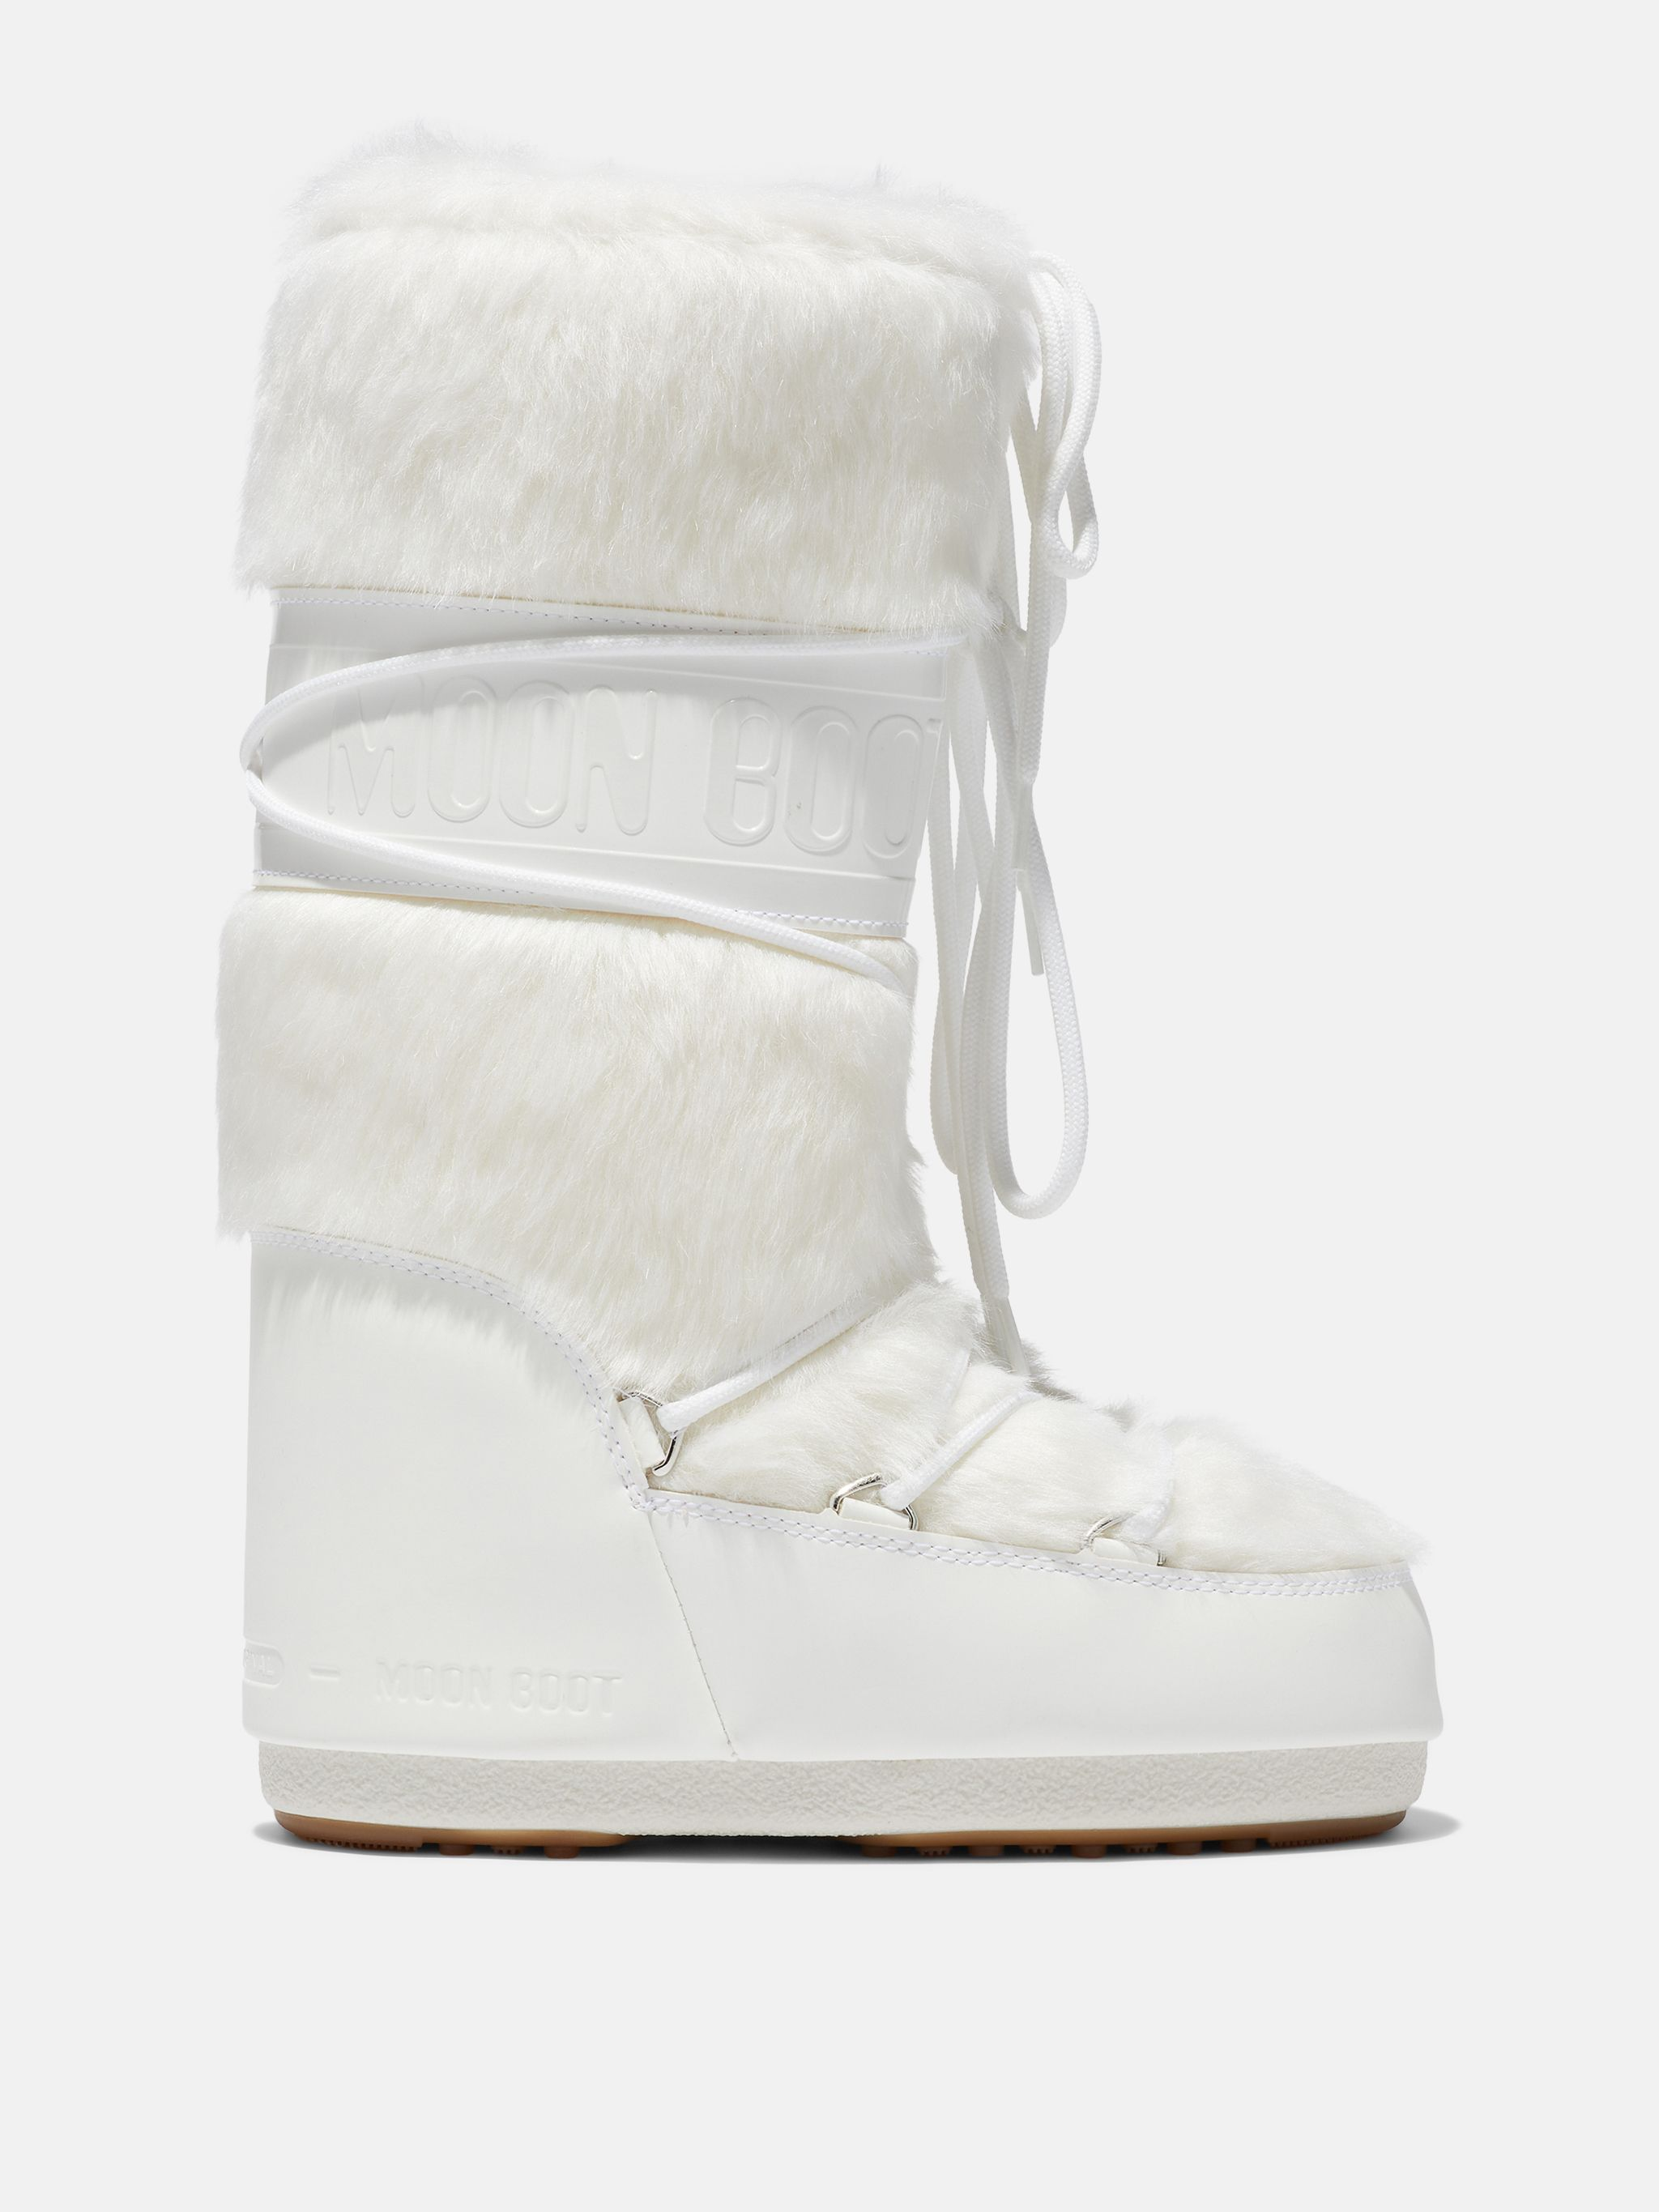 ICON WEISSE KUNSTFELL STIEFEL